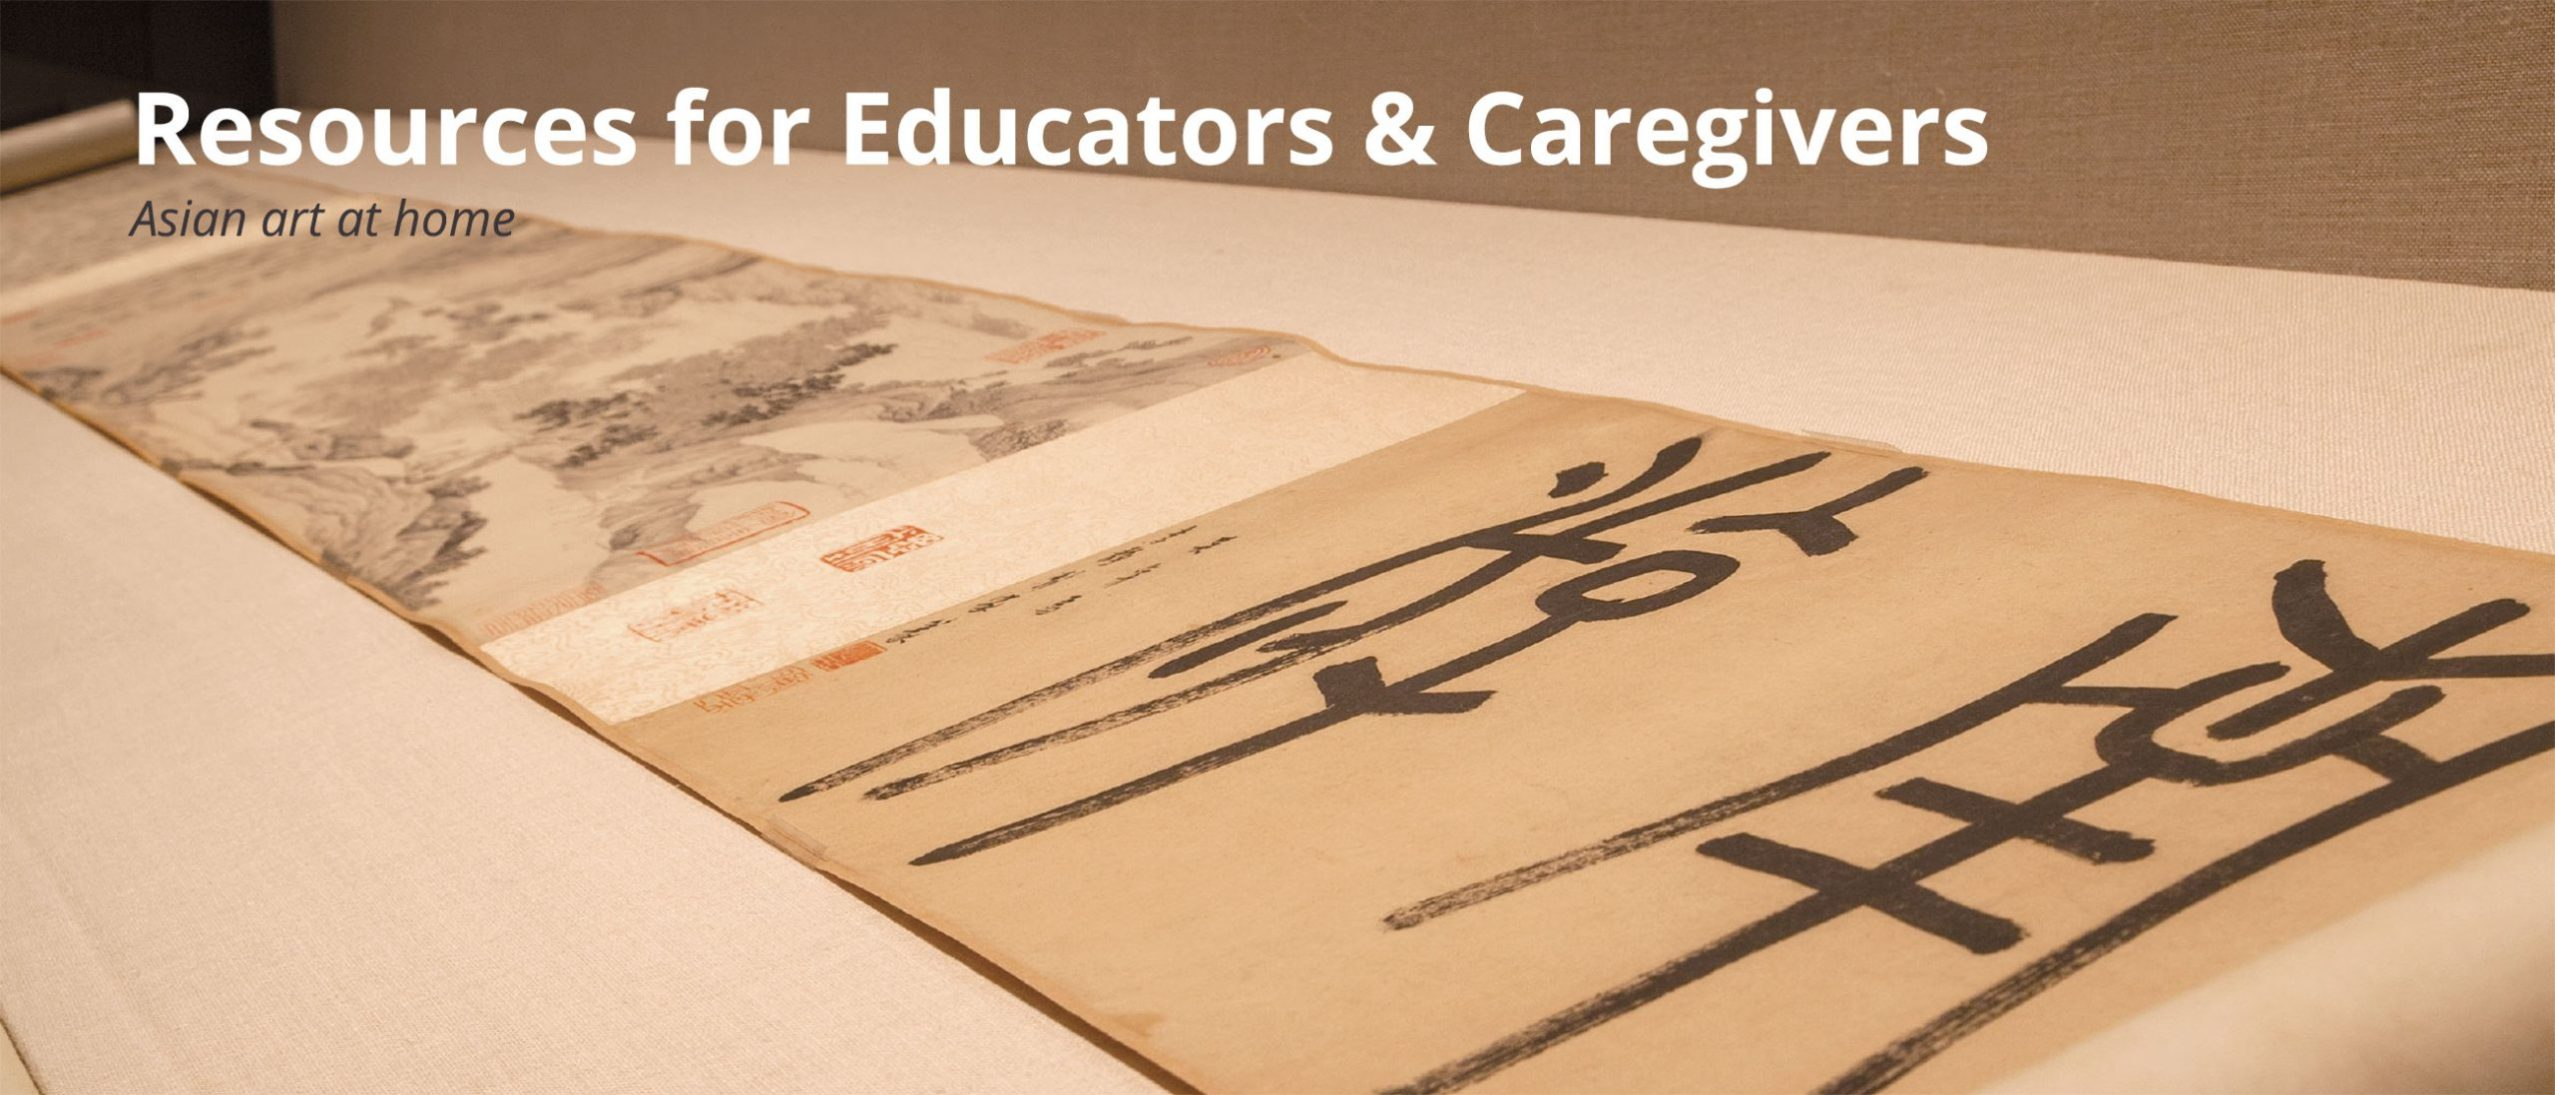 Resources for Educators and Caregivers